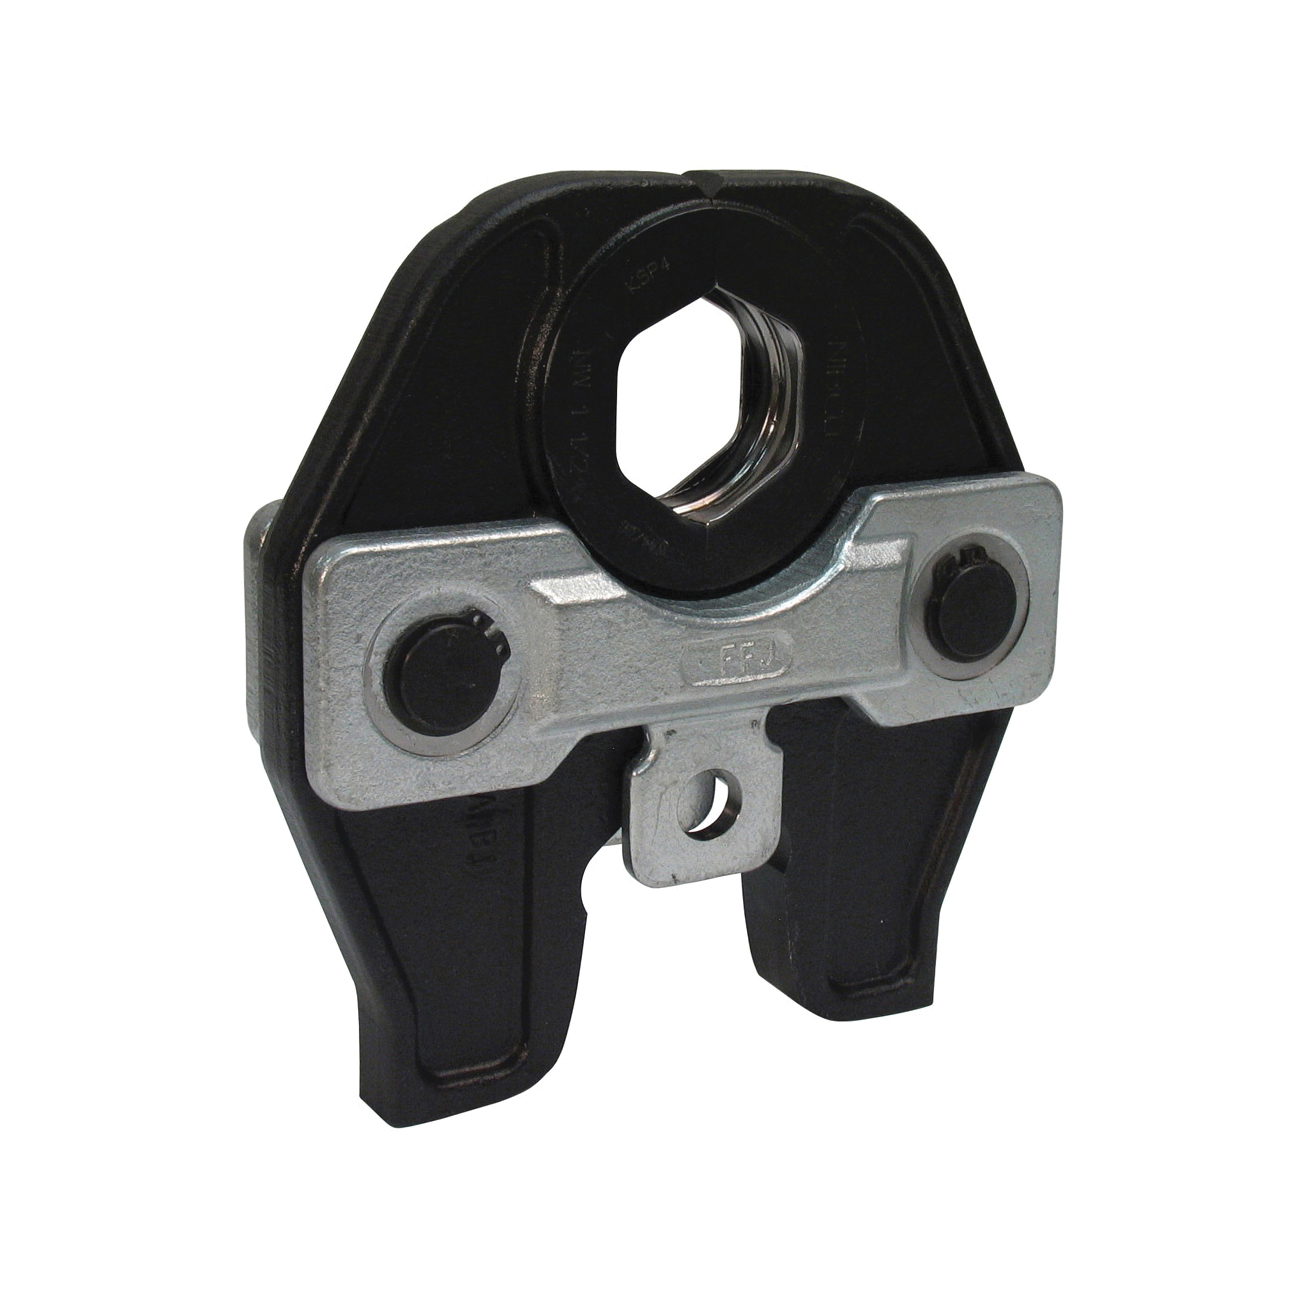 NIBCO® R00350PC PC-15S Standard Pressing Jaw, For Use With PC-280 or PC-100 Press Tools, 2 in